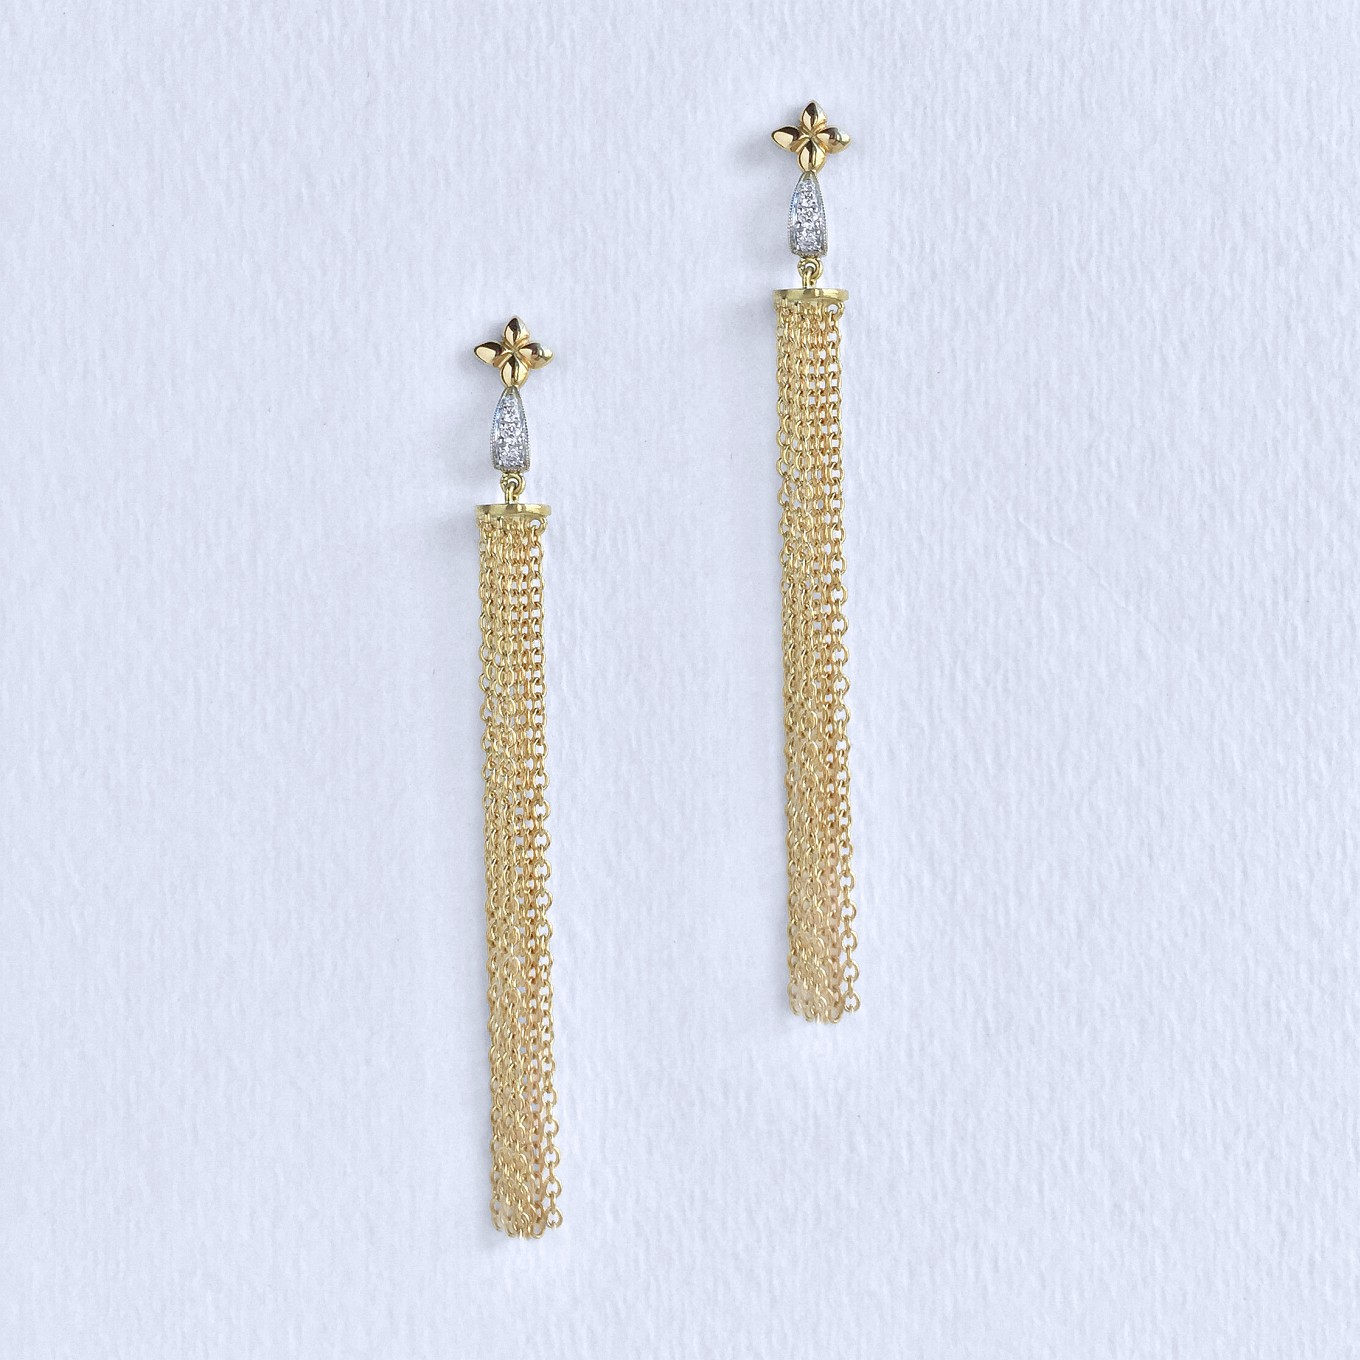 """ALLEGRA"" TASSEL EARRINGS IN YELLOW GOLD WITH DIAMONDS"